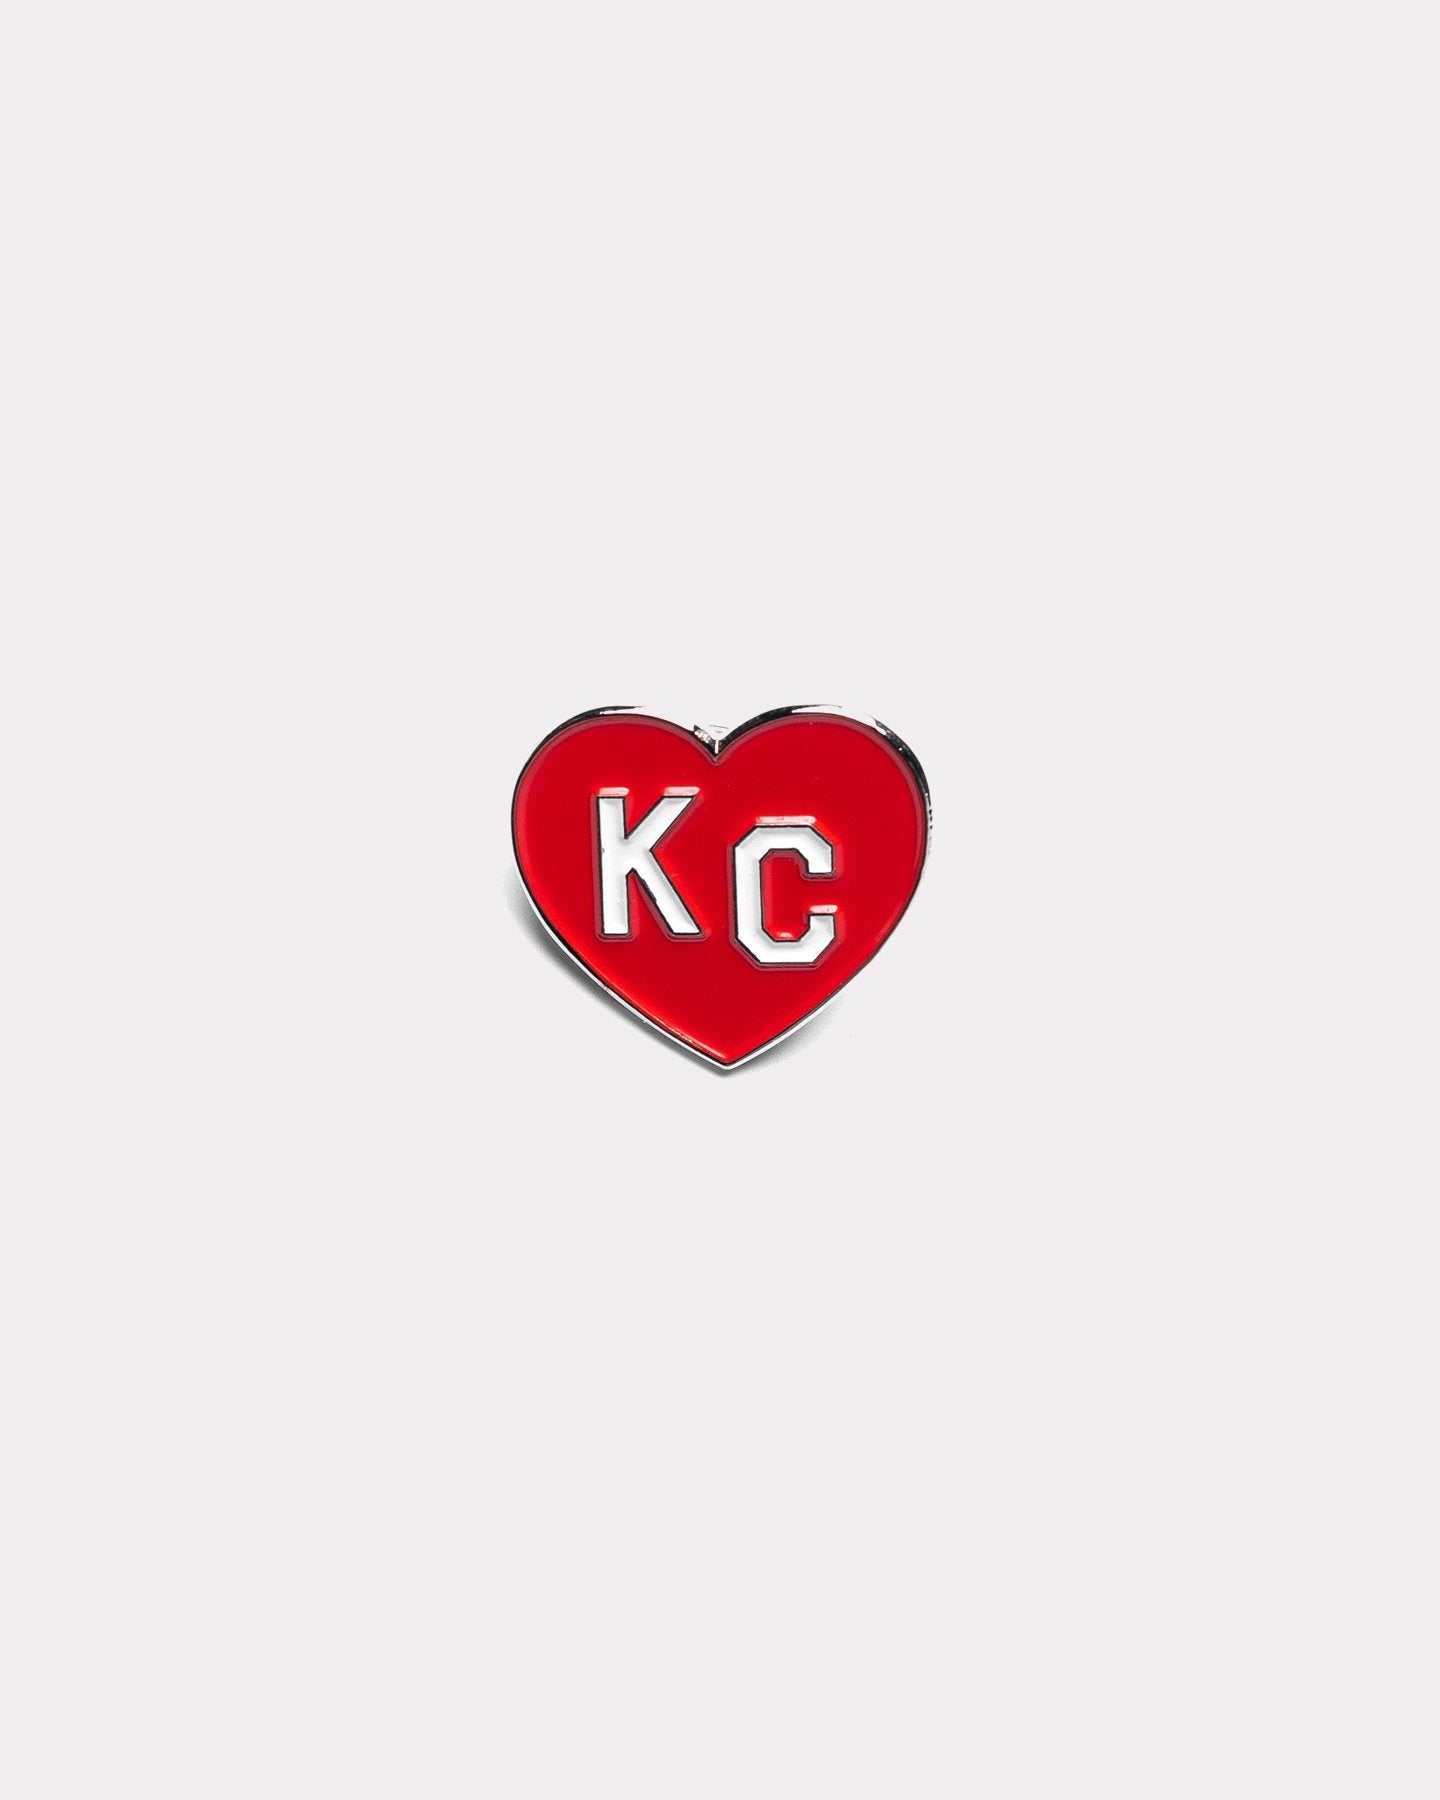 Red Charlie Hustle KC Heart Enamel Pin